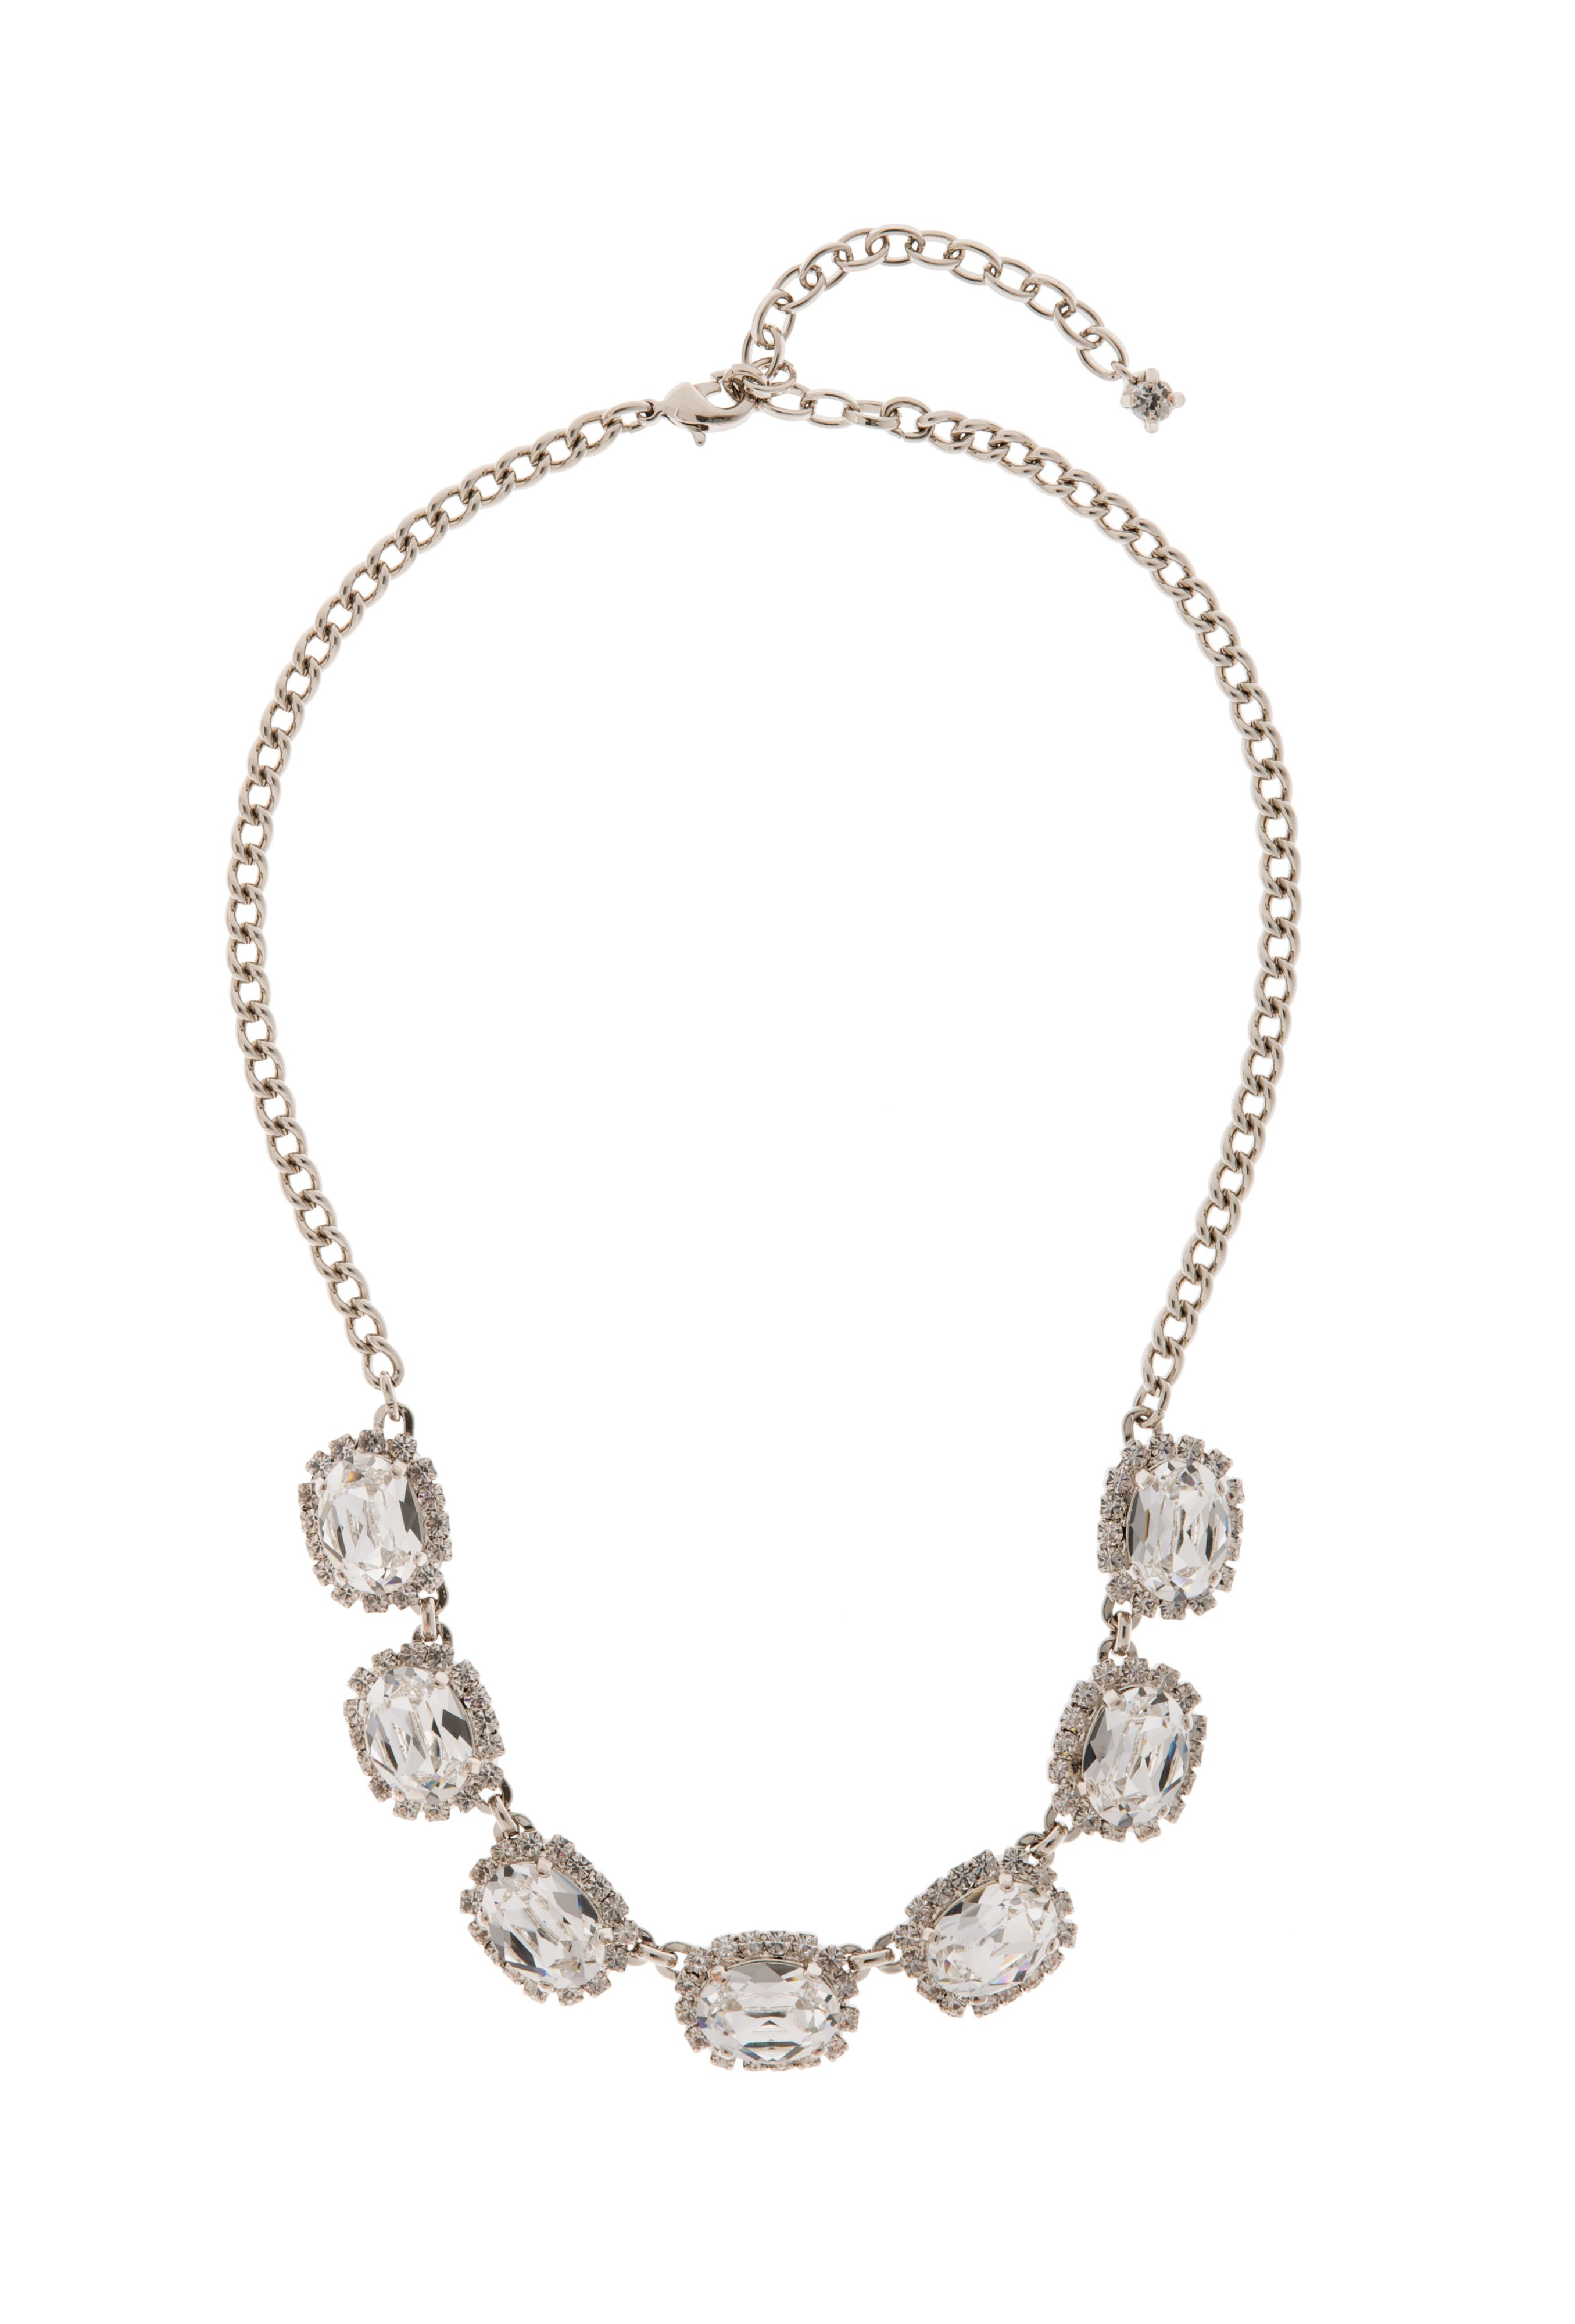 Bridal crystal oval stoned necklace